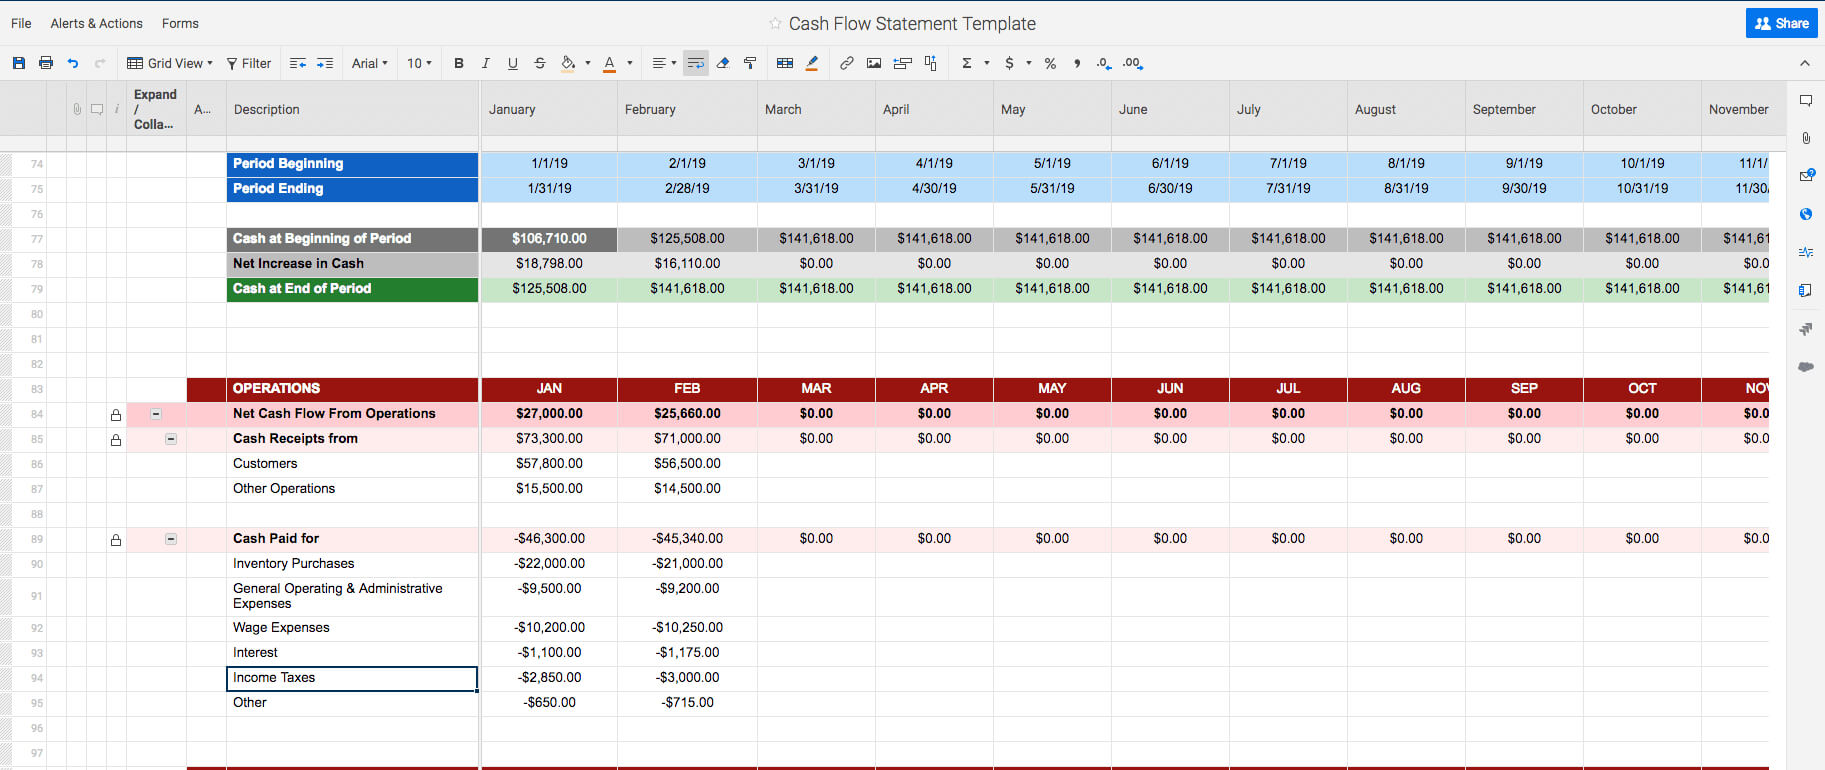 Free Cash Flow Statement Templates   Smartsheet Intended For Cash Position Report Template